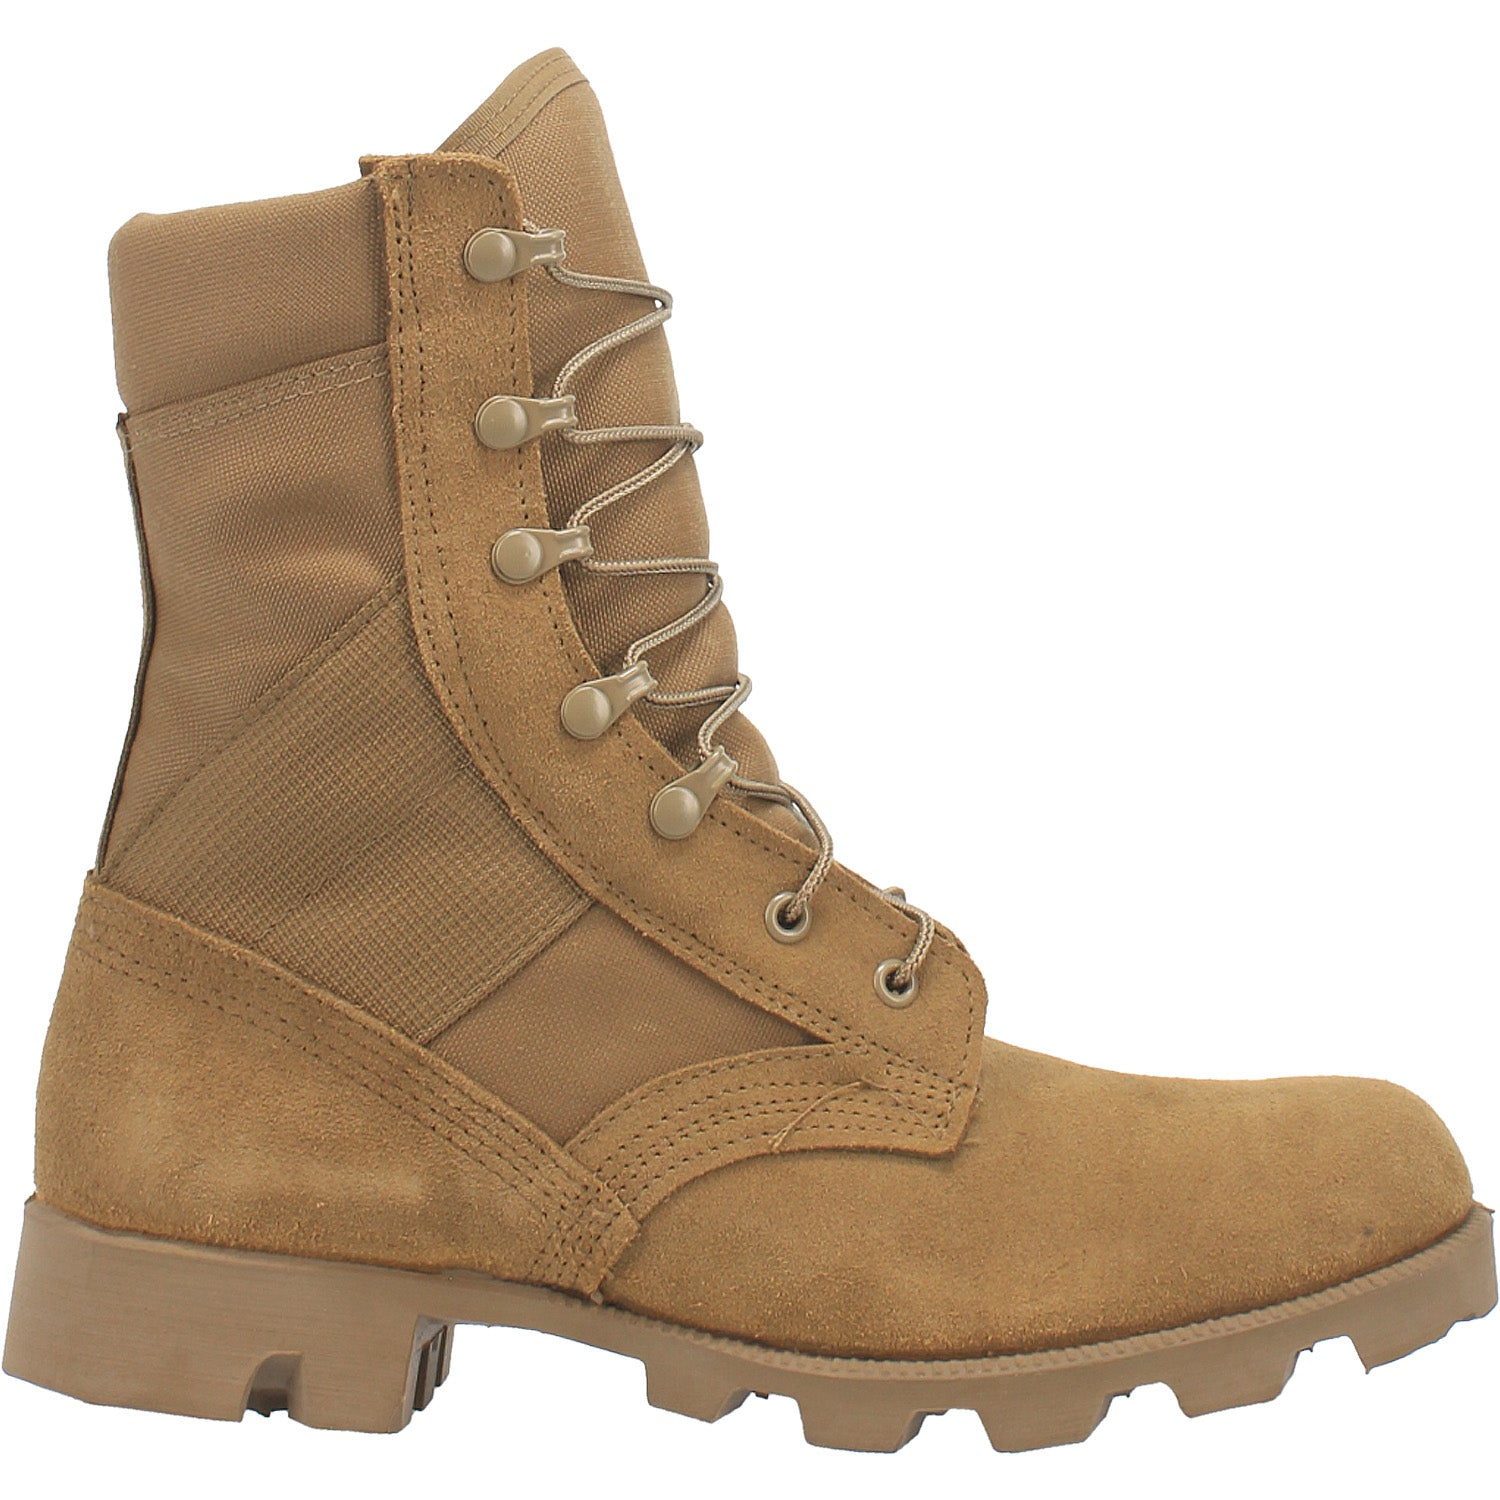 Hot Weather Coyote Boot with Panama Outsole 14940776267818